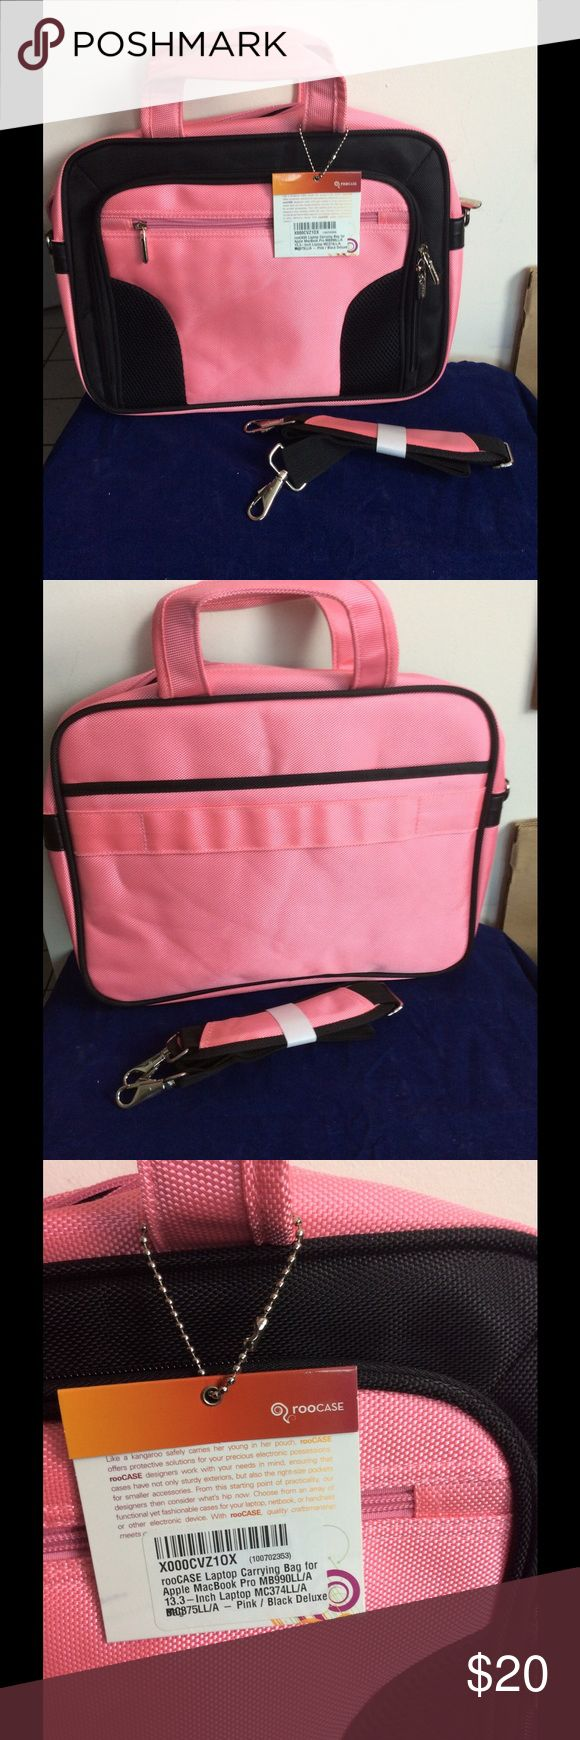 """RooCase Laptop Carrying Bag for Tablet or Laptop RooCase Laptop Carrying Bag for Apple Macabook Pro 13.3"""" Laptop Pink/Black Deluxe.  New with tags. rooCASE Bags Laptop Bags"""